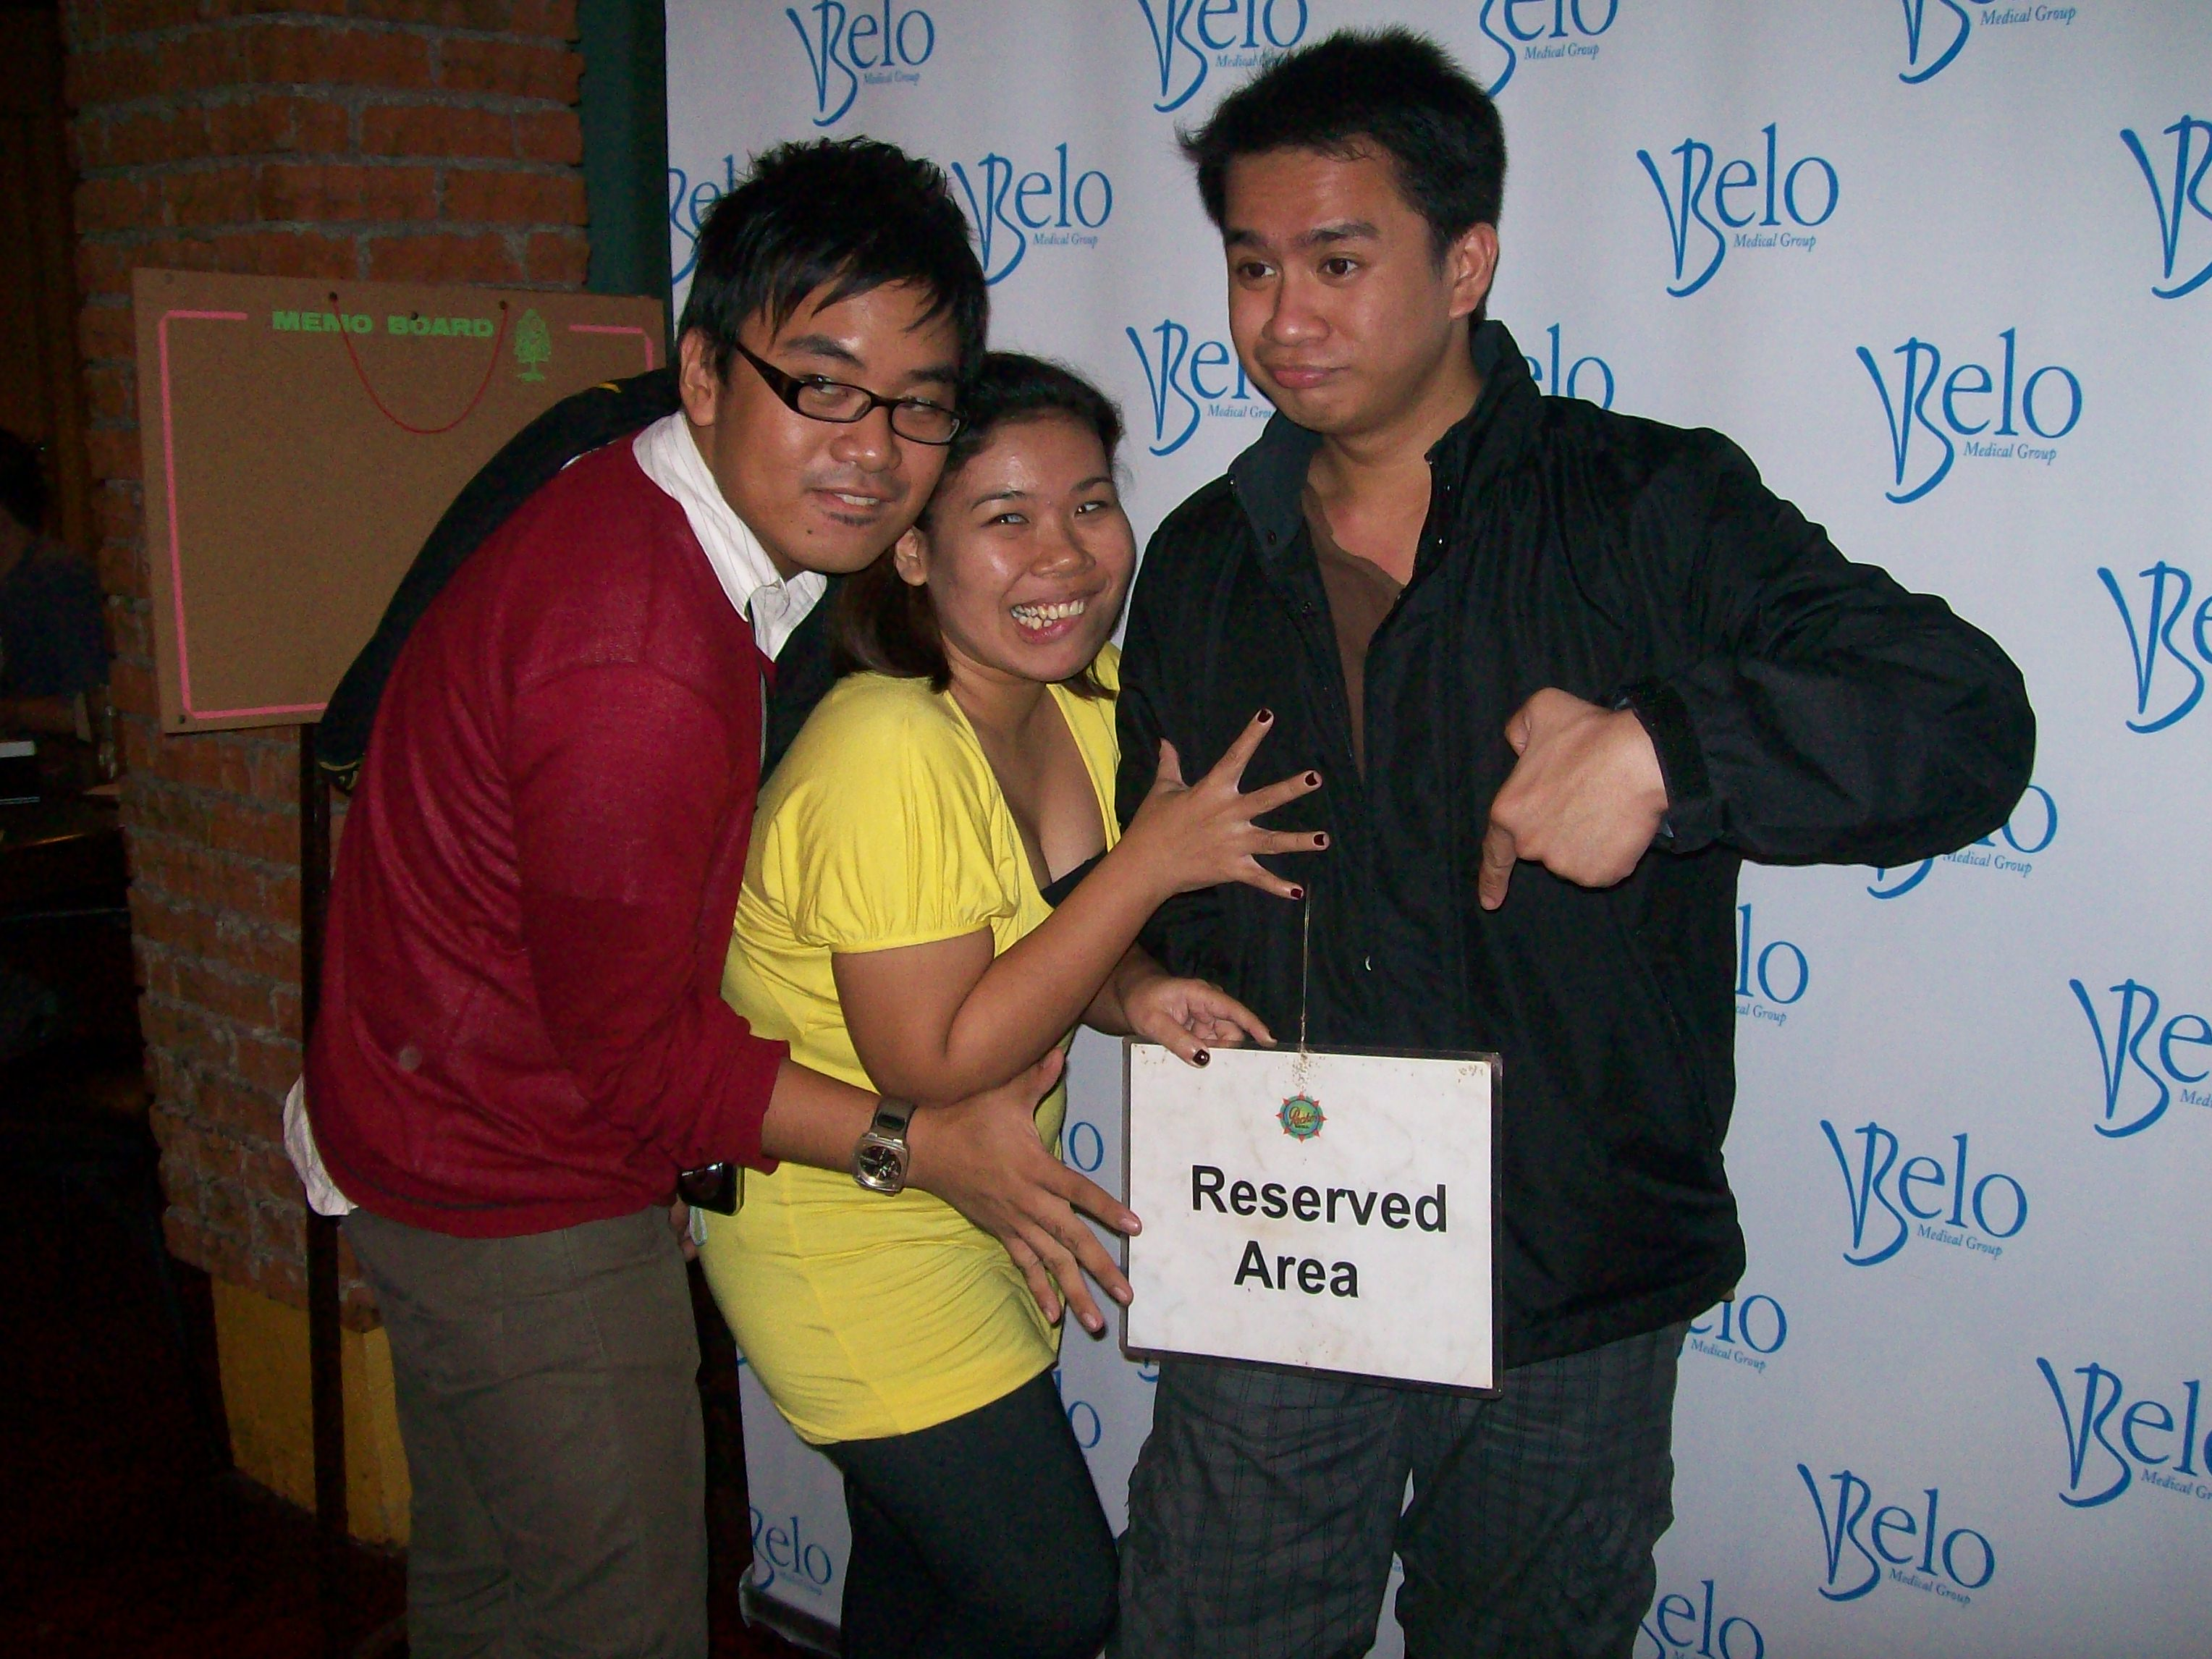 Coy, Faith and Jeff at the First Belo Bloggers Event (2008)